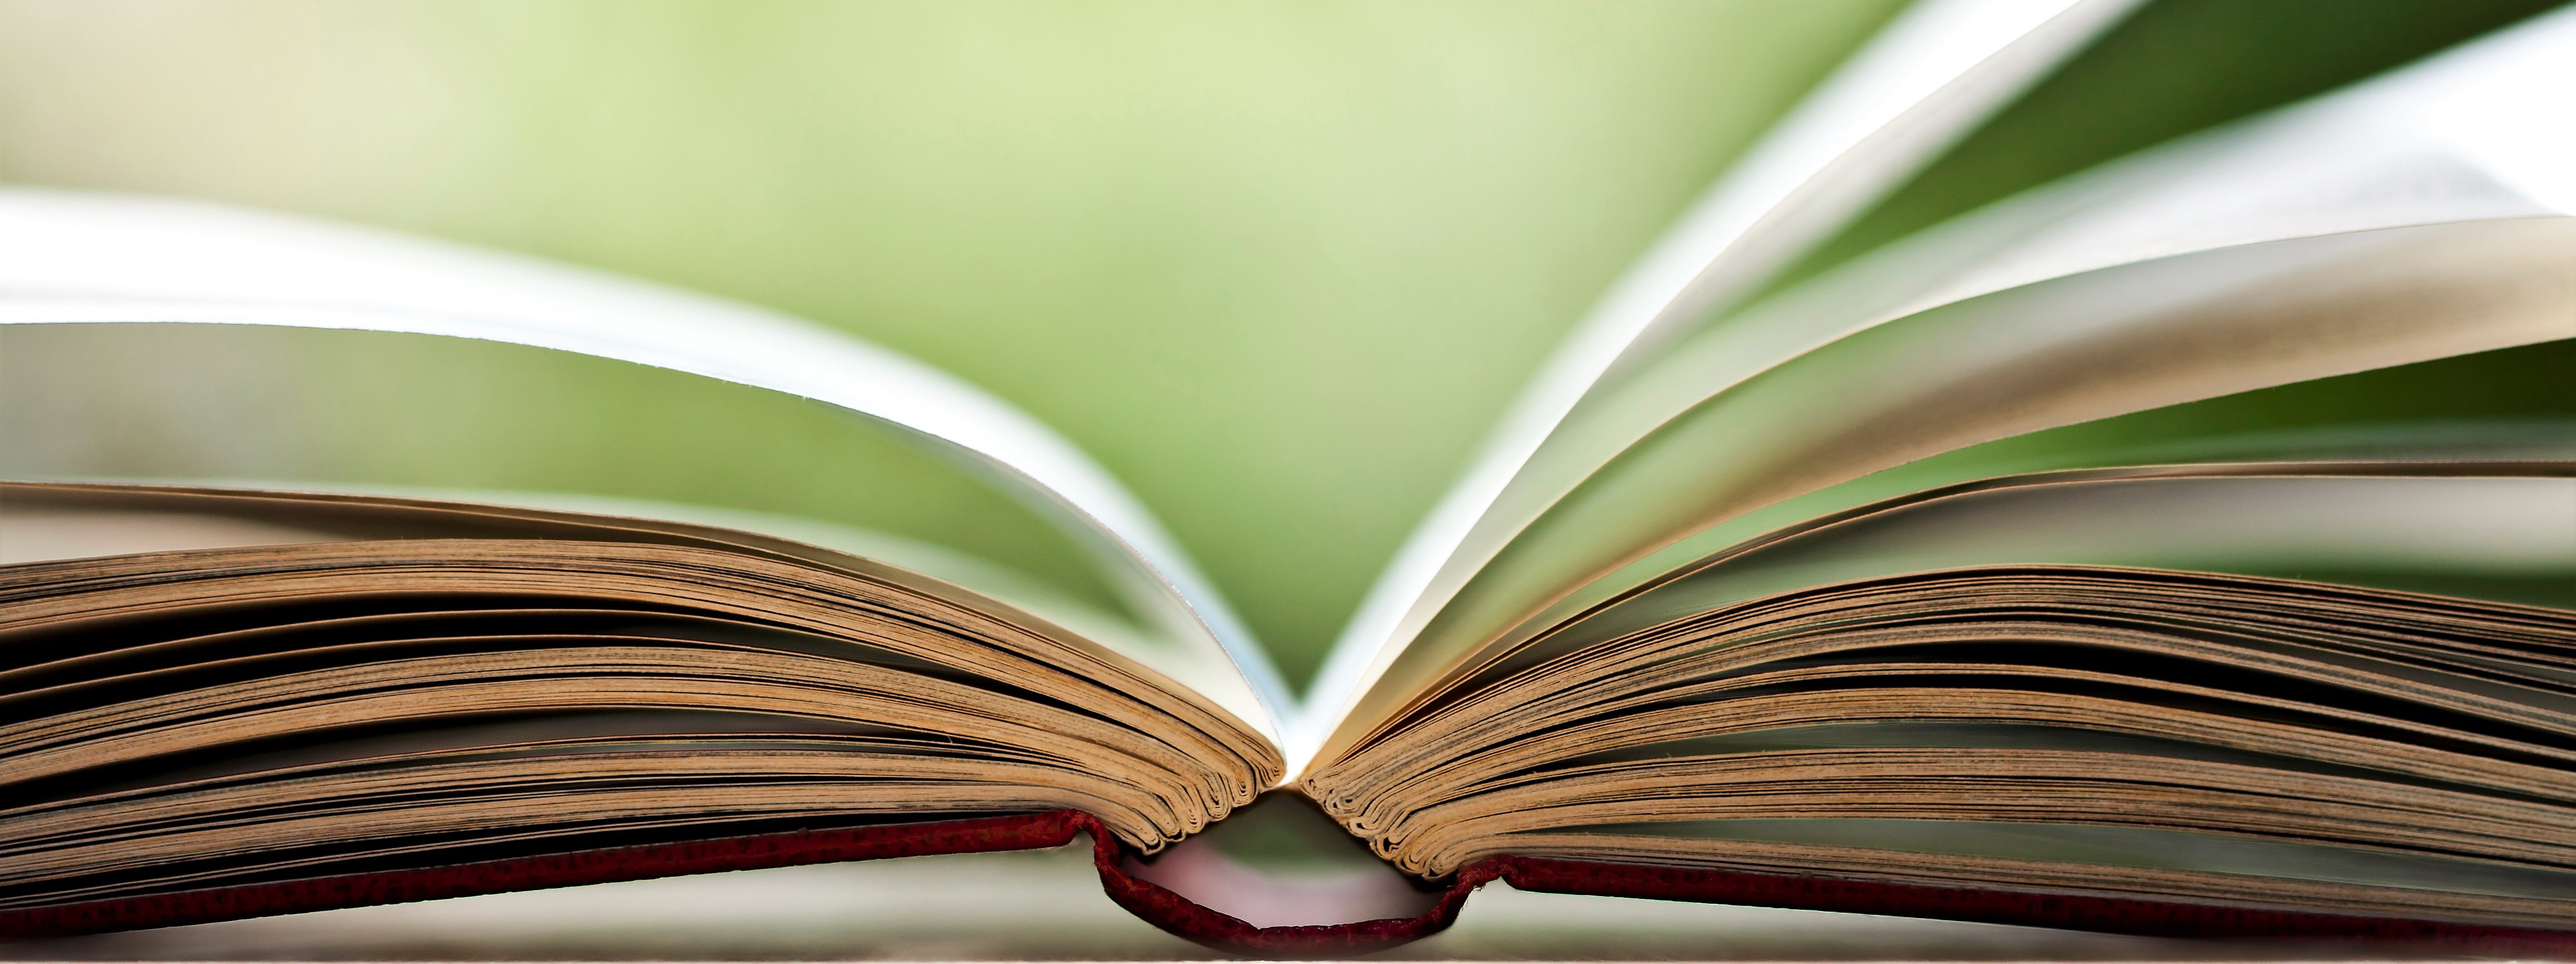 Close up on open book